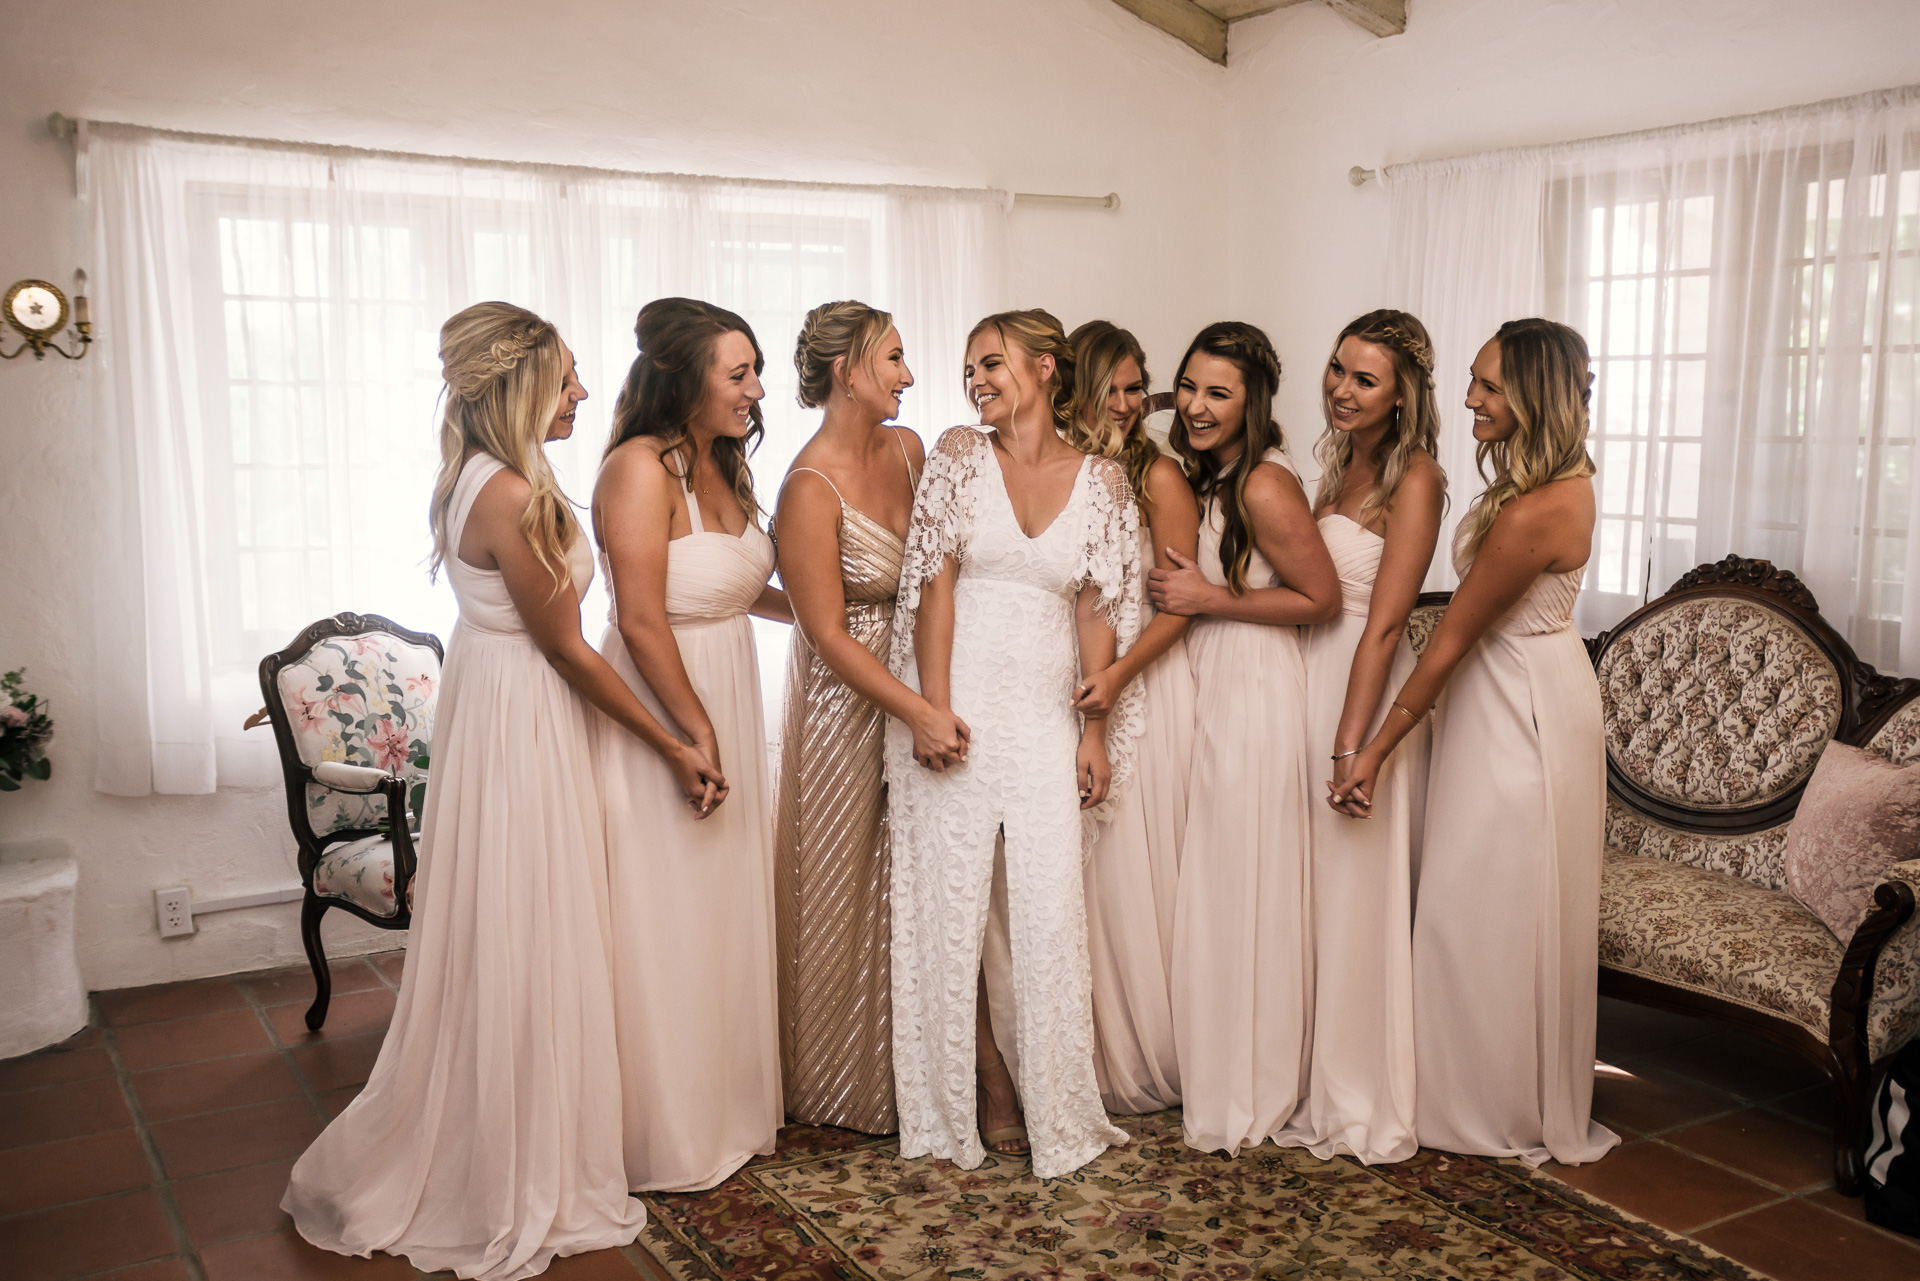 bride shares a good laugh with her bridesmaids while they pose for photos captured by photographer during romantic wedding at the historic Leo Carrillo Ranch in Carlsbad California